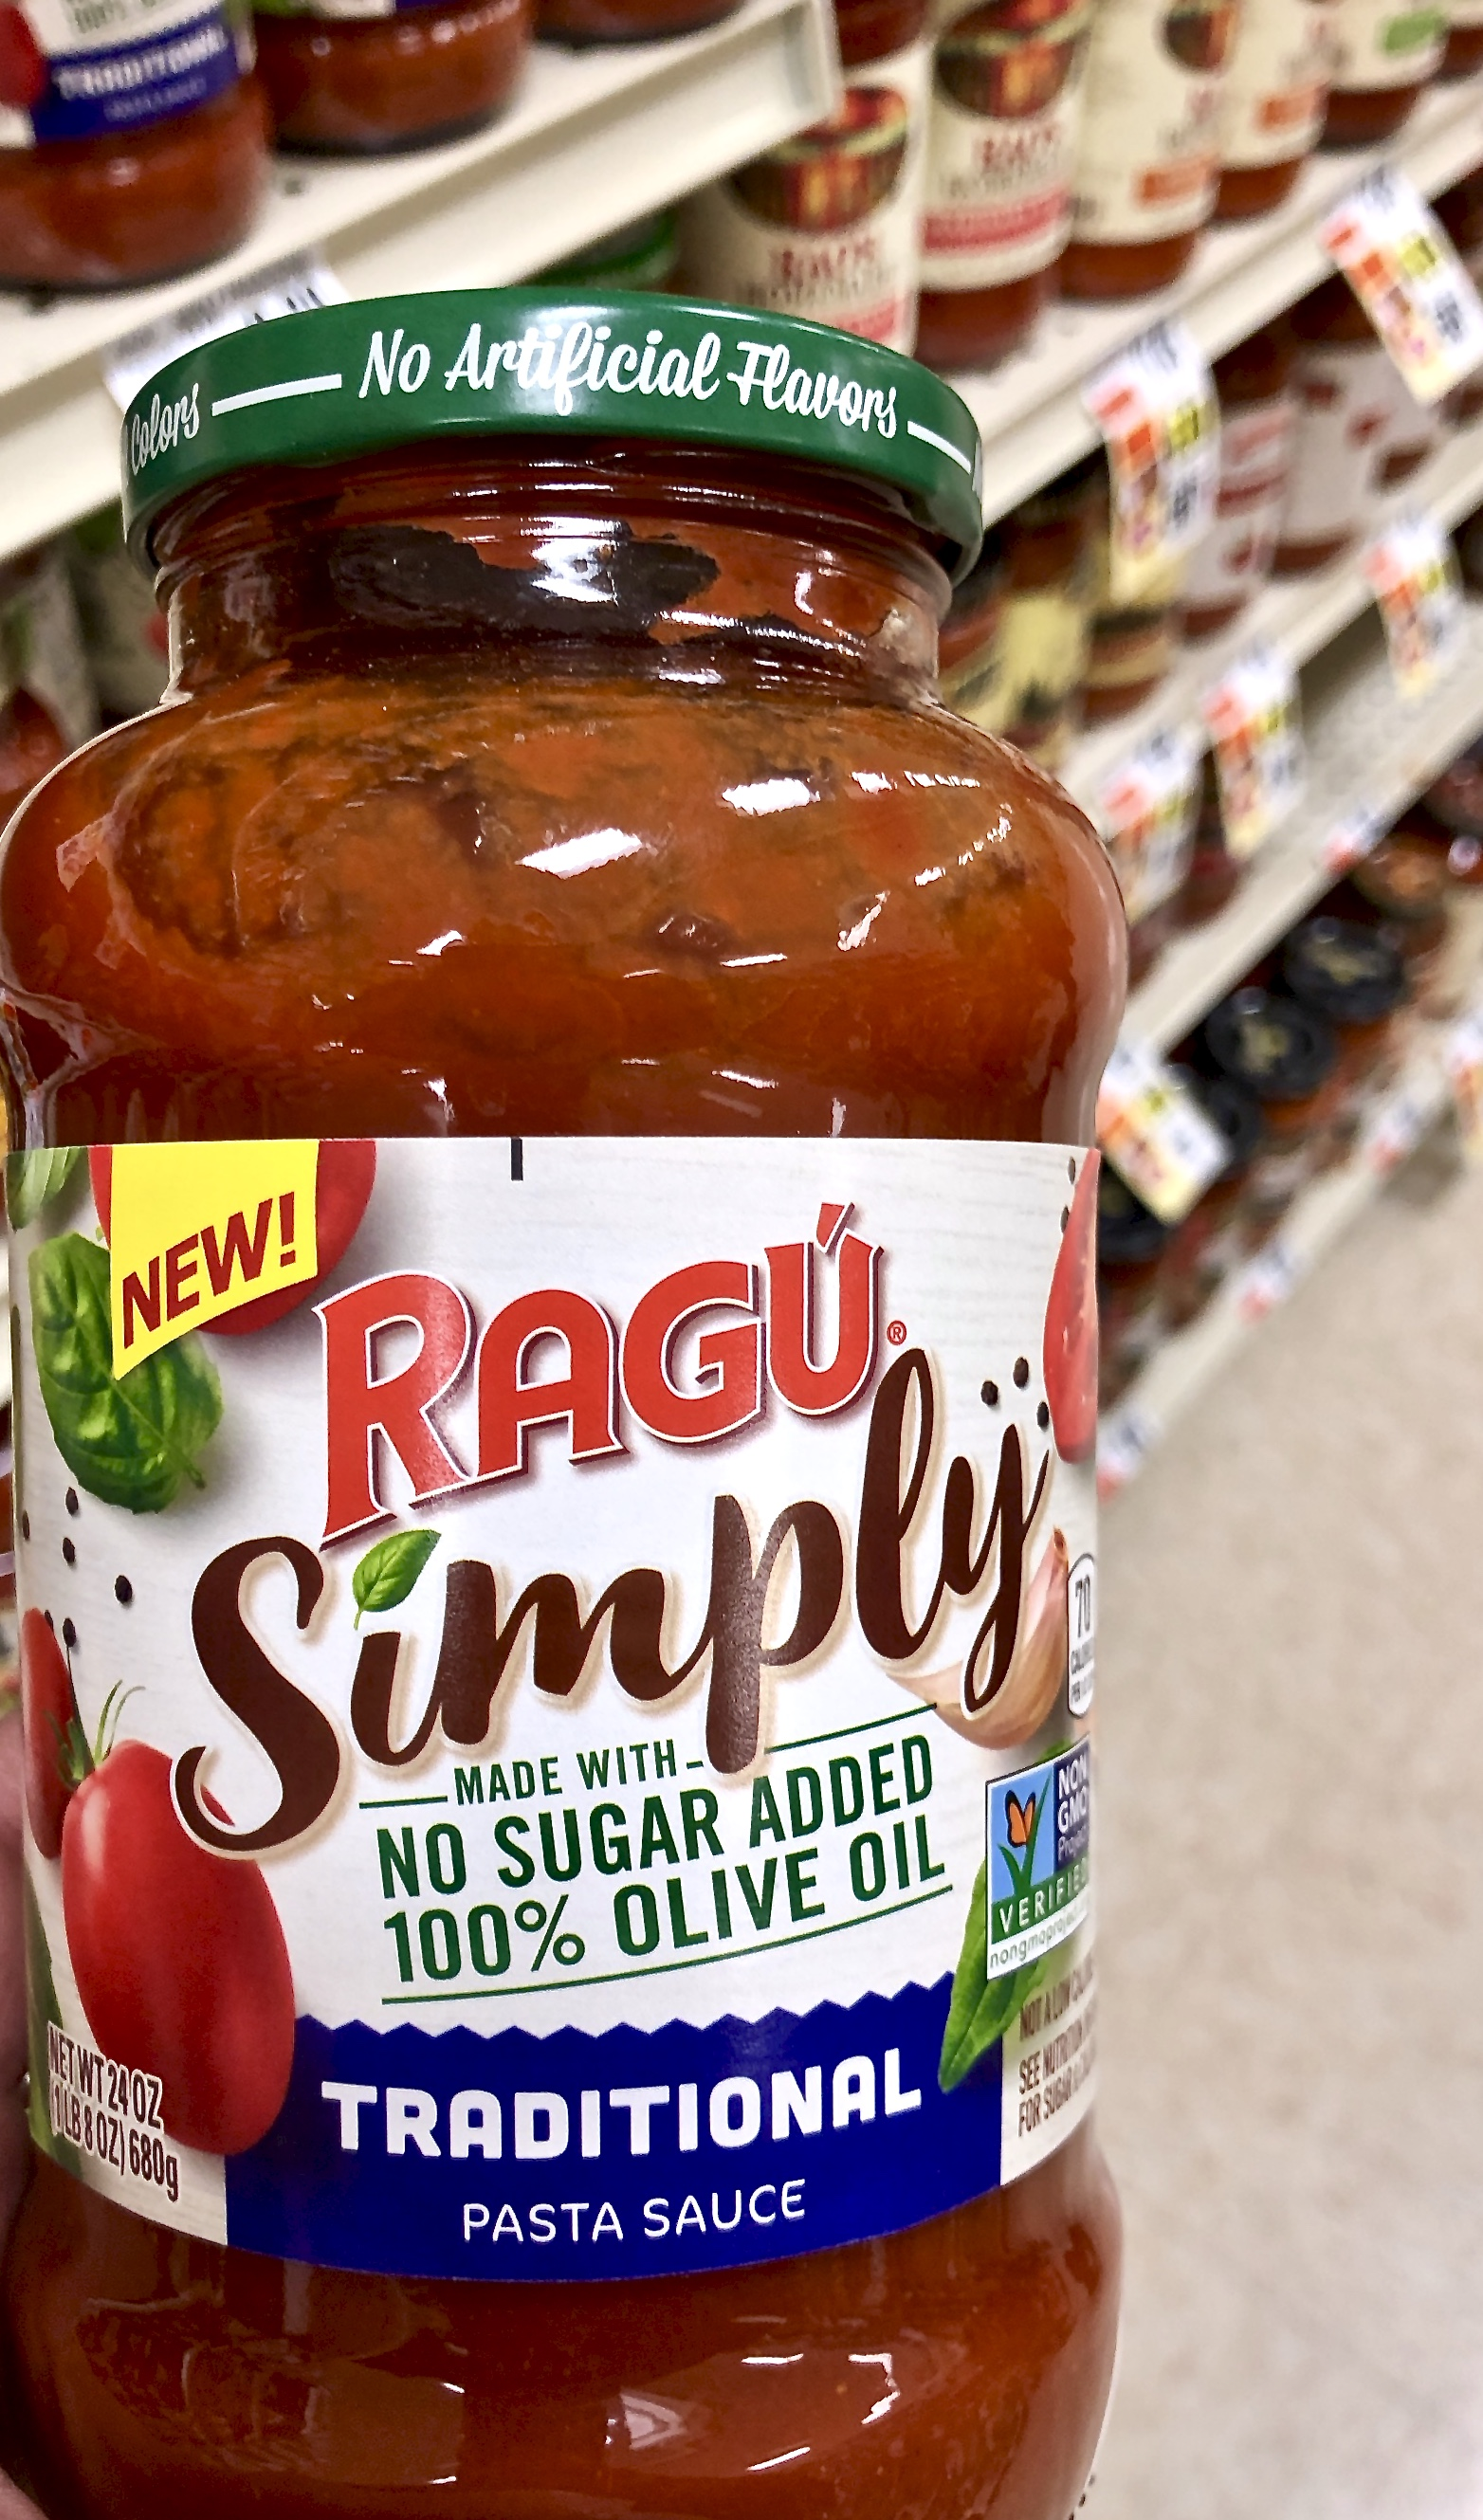 NEW Ragu Coupon makes for Pasta Sauce & Store Deals at $.49, $.67 & $1!